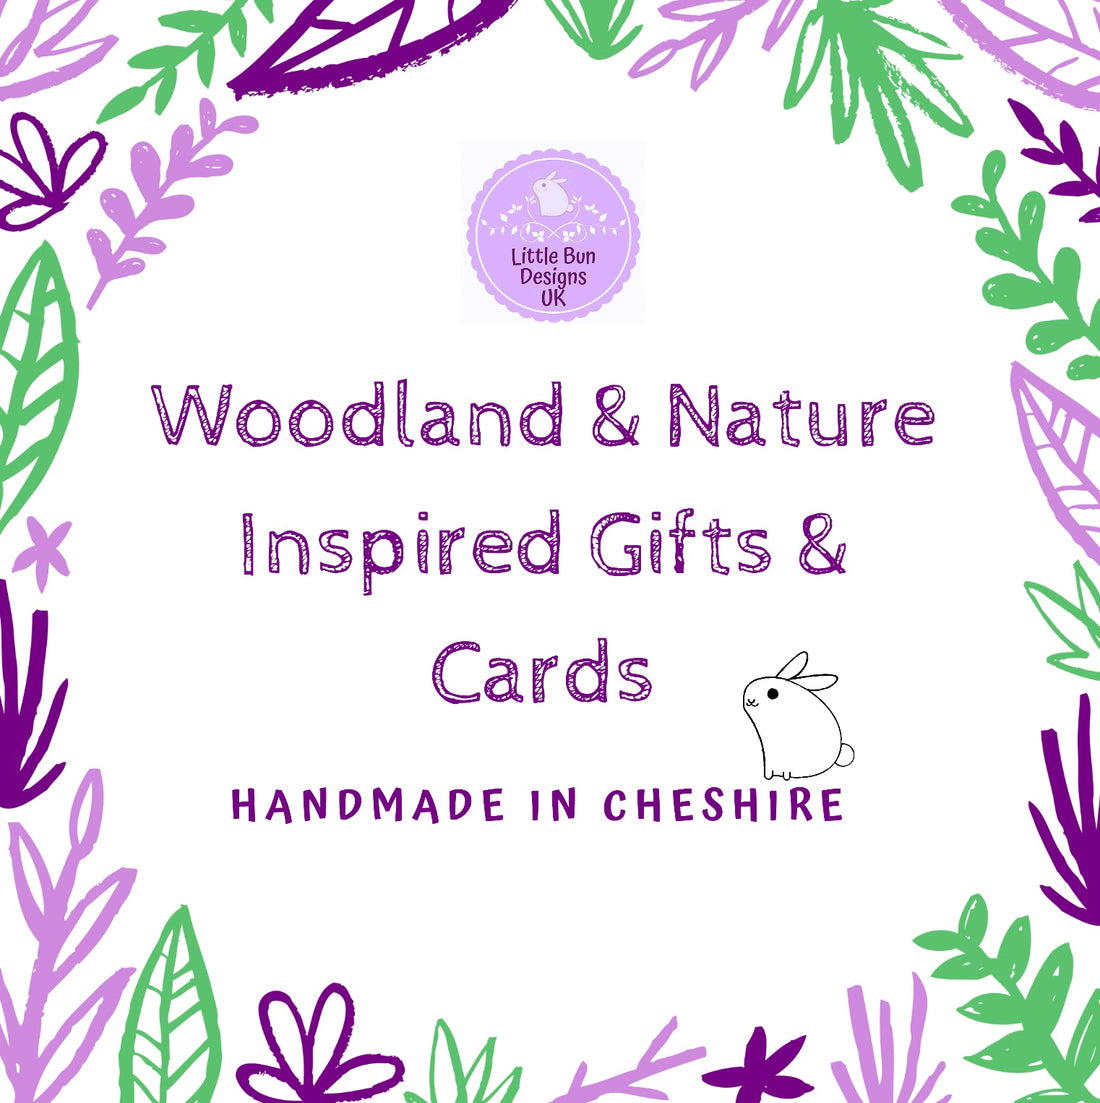 Woodland and nature inspired gifts and cards